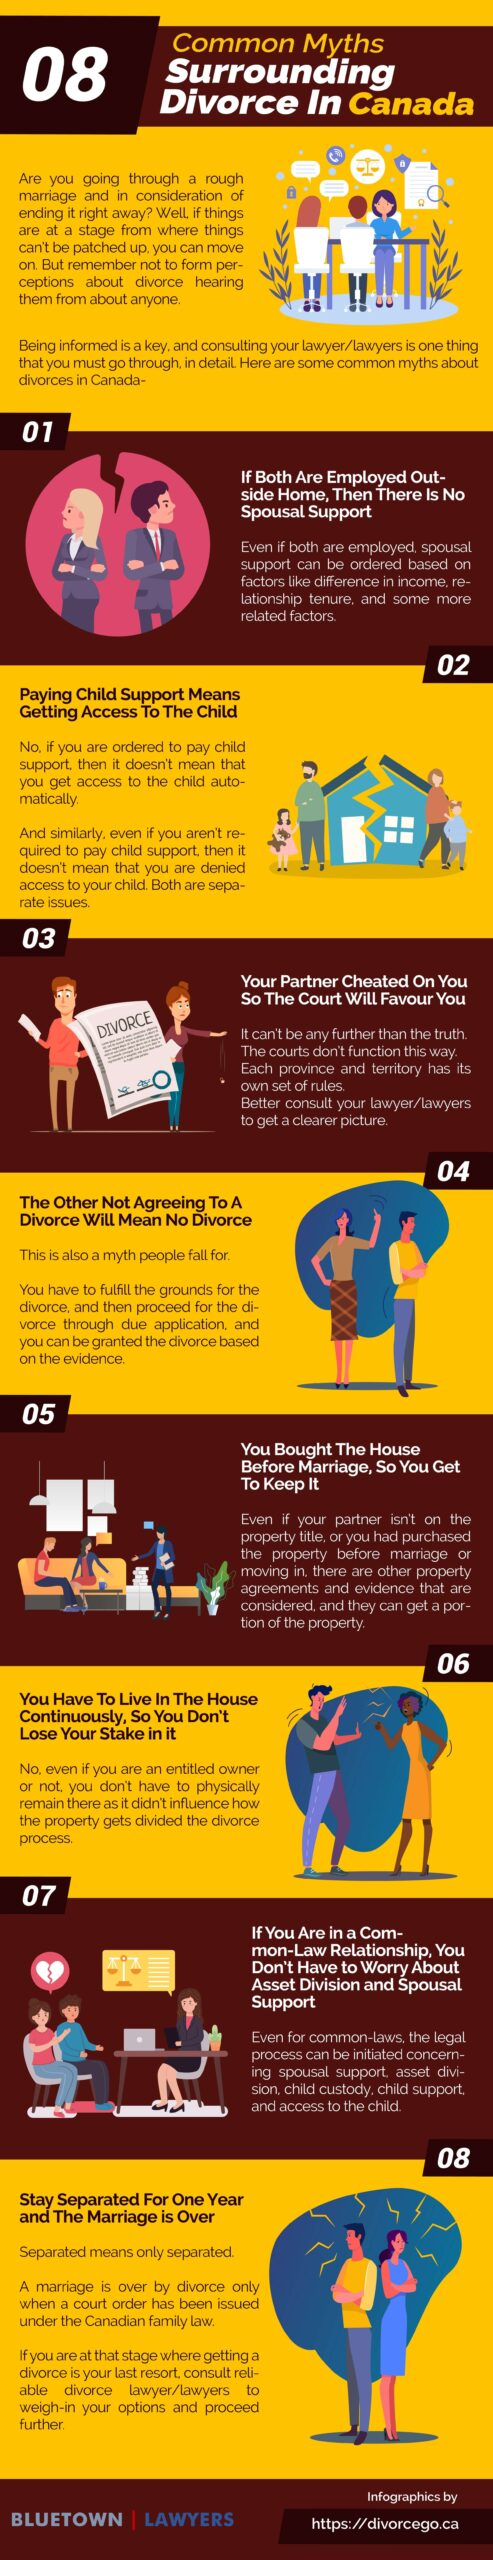 divorce lawyer Toronto, 8 Common Myths Surrounding Divorce In Canada